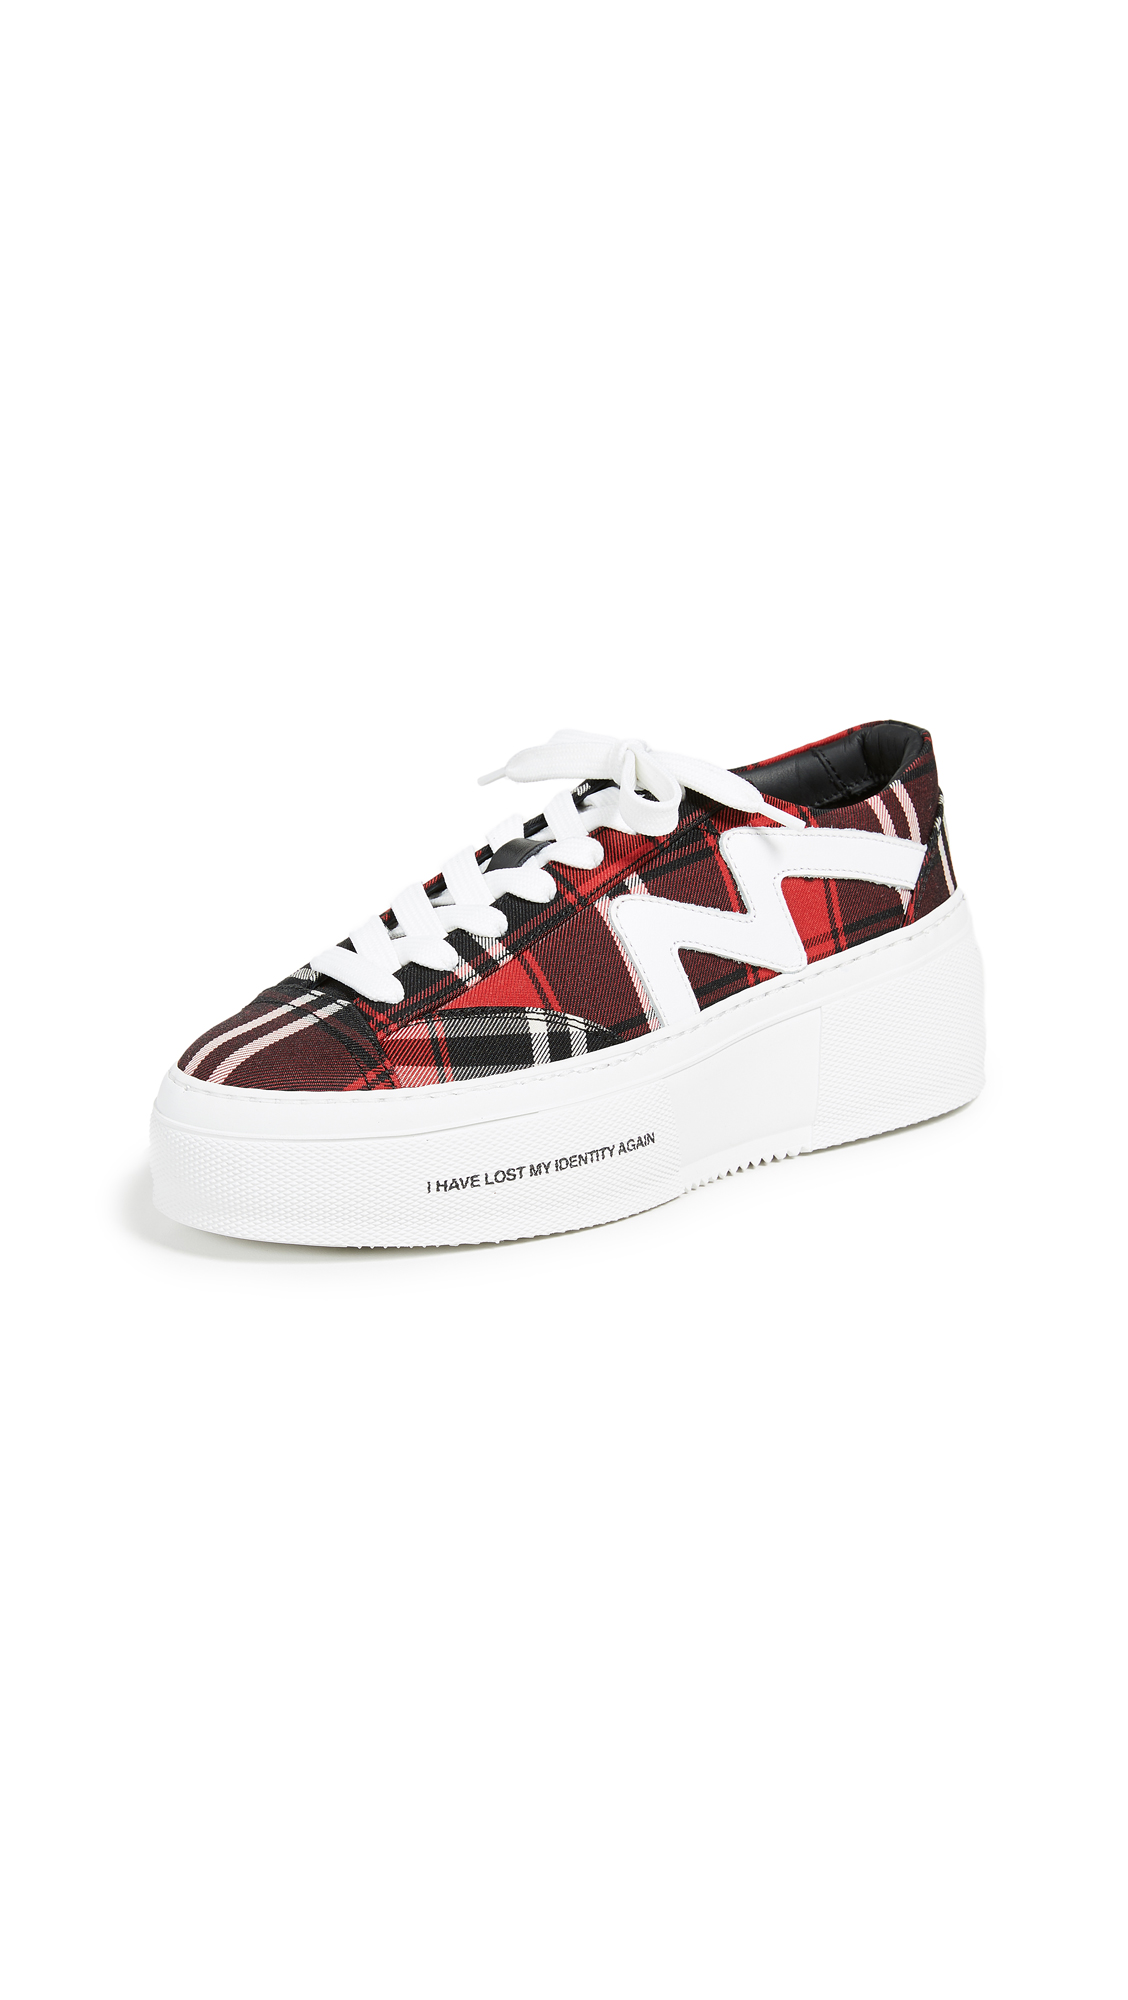 Lace Up Cupsole Sneakers in Red